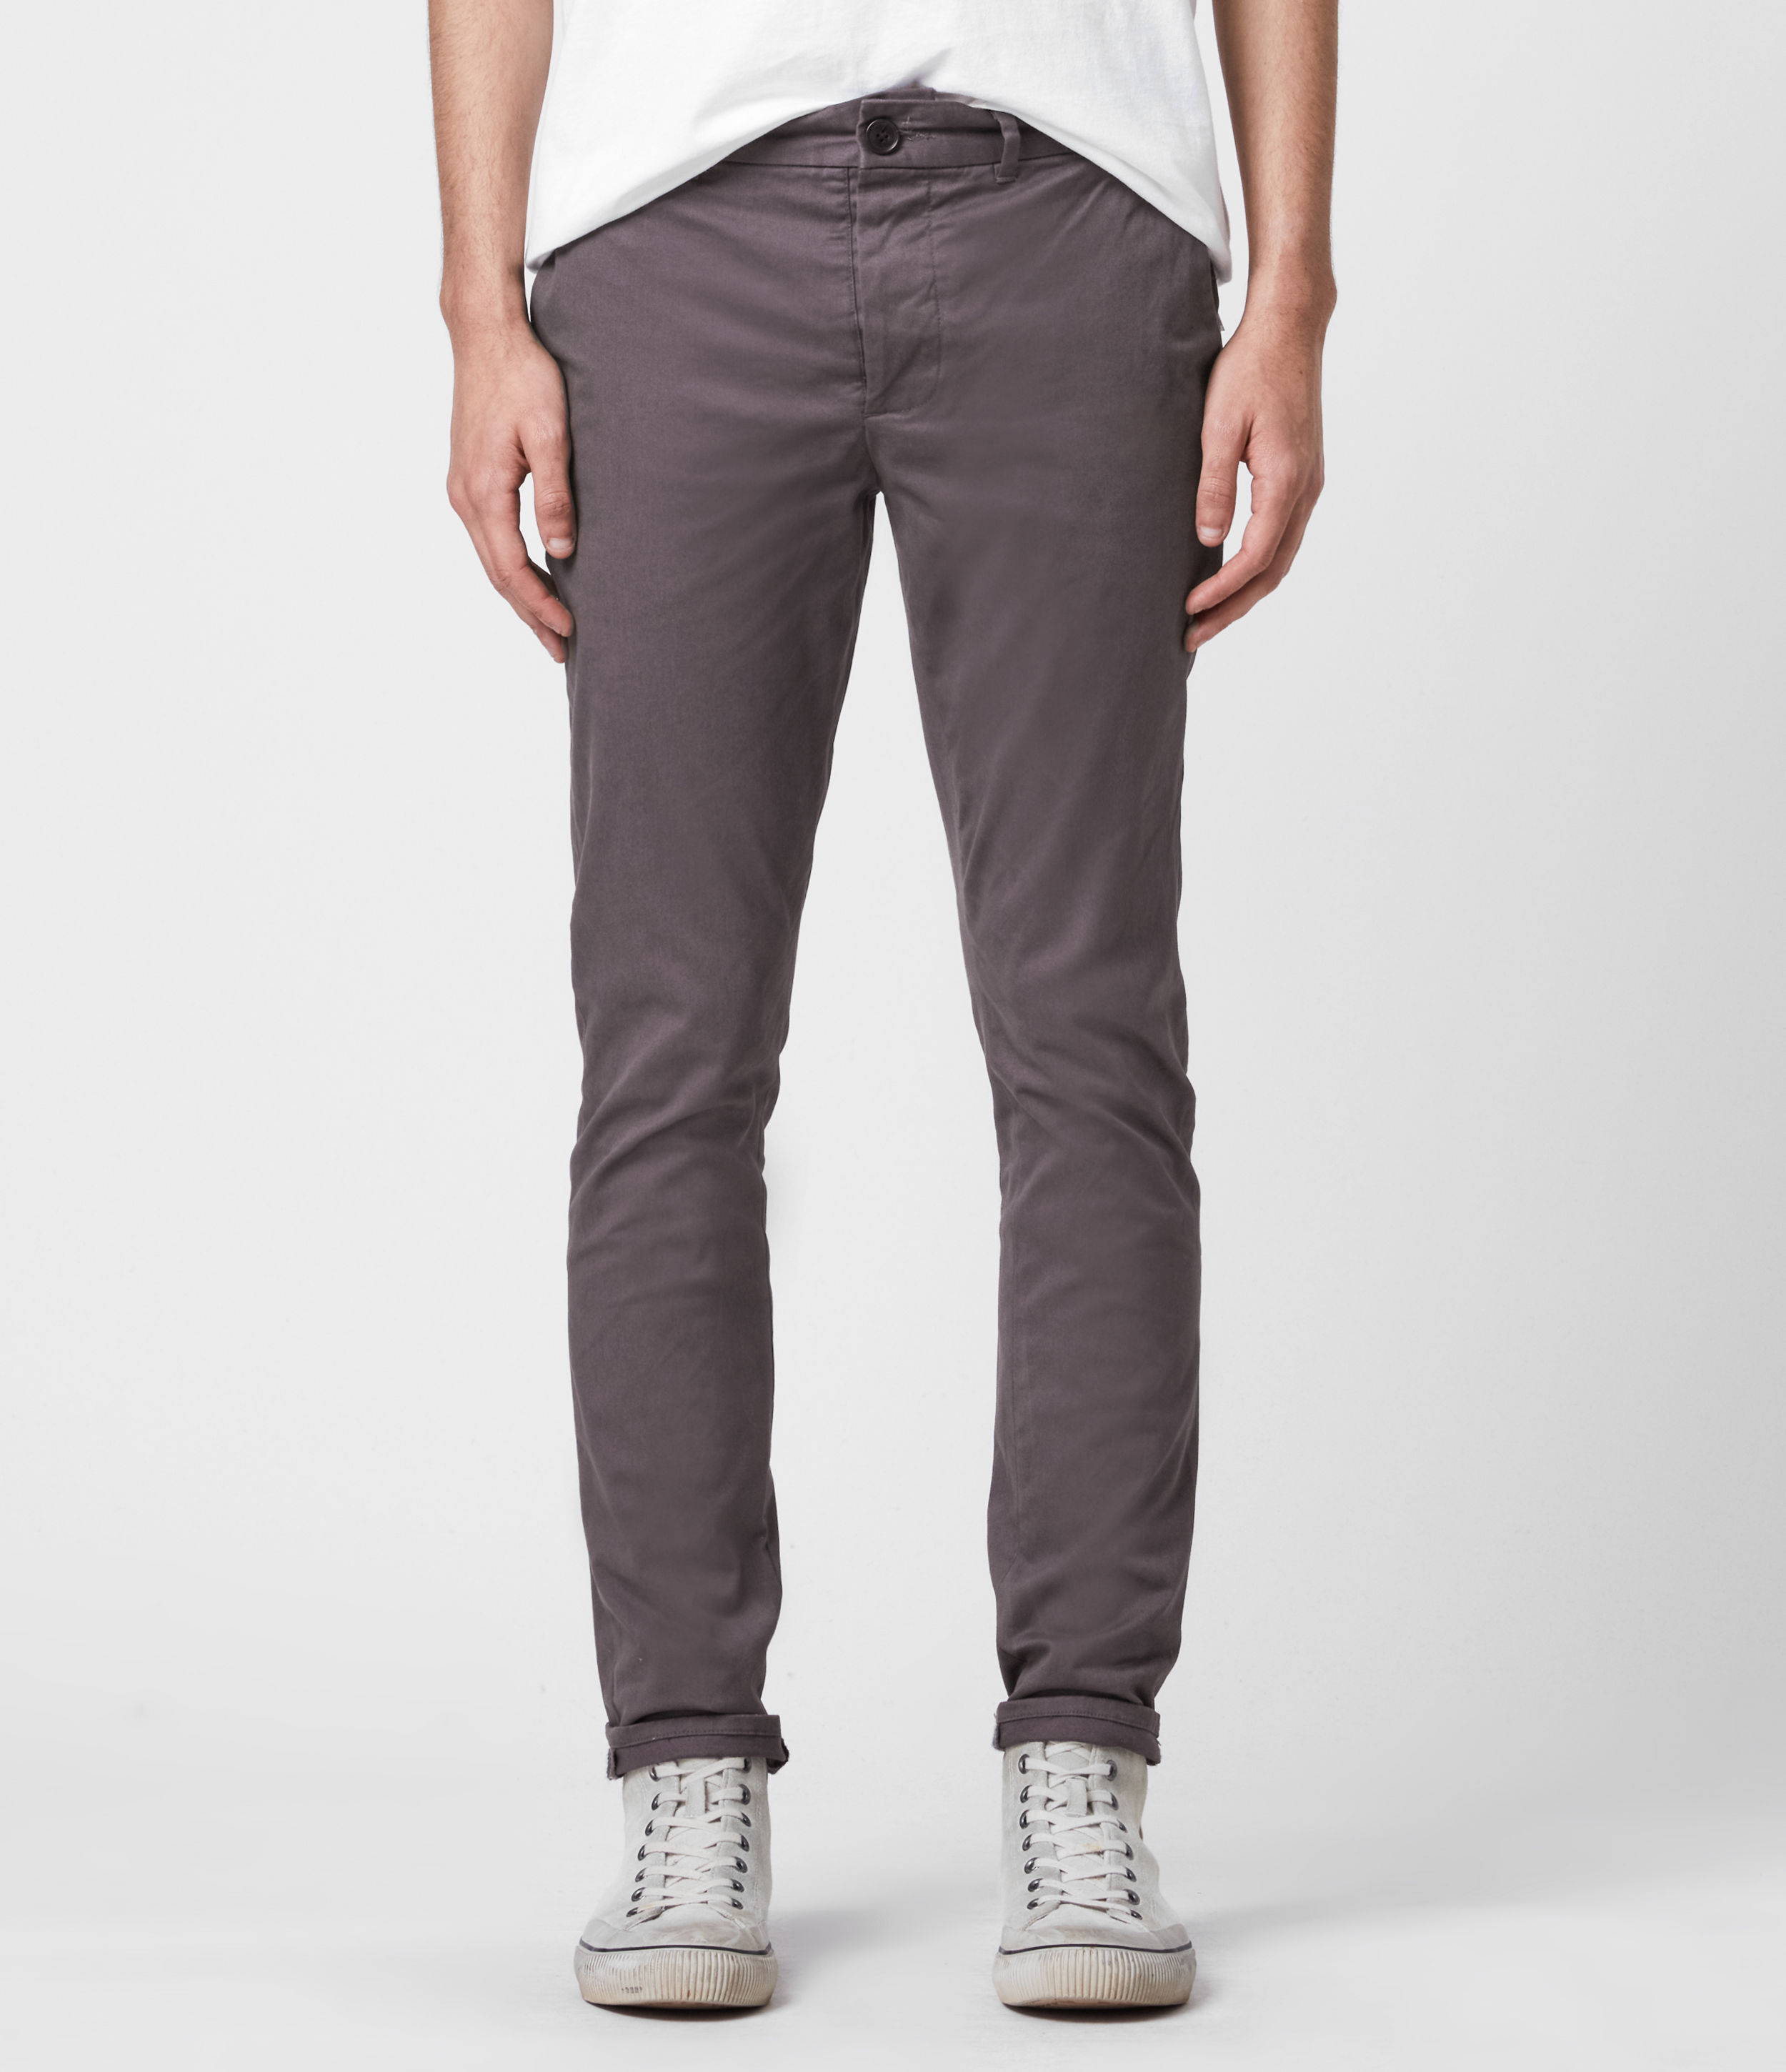 AllSaints Men's Cotton Lightweight Park Skinny Chinos, Grey, Size: 31